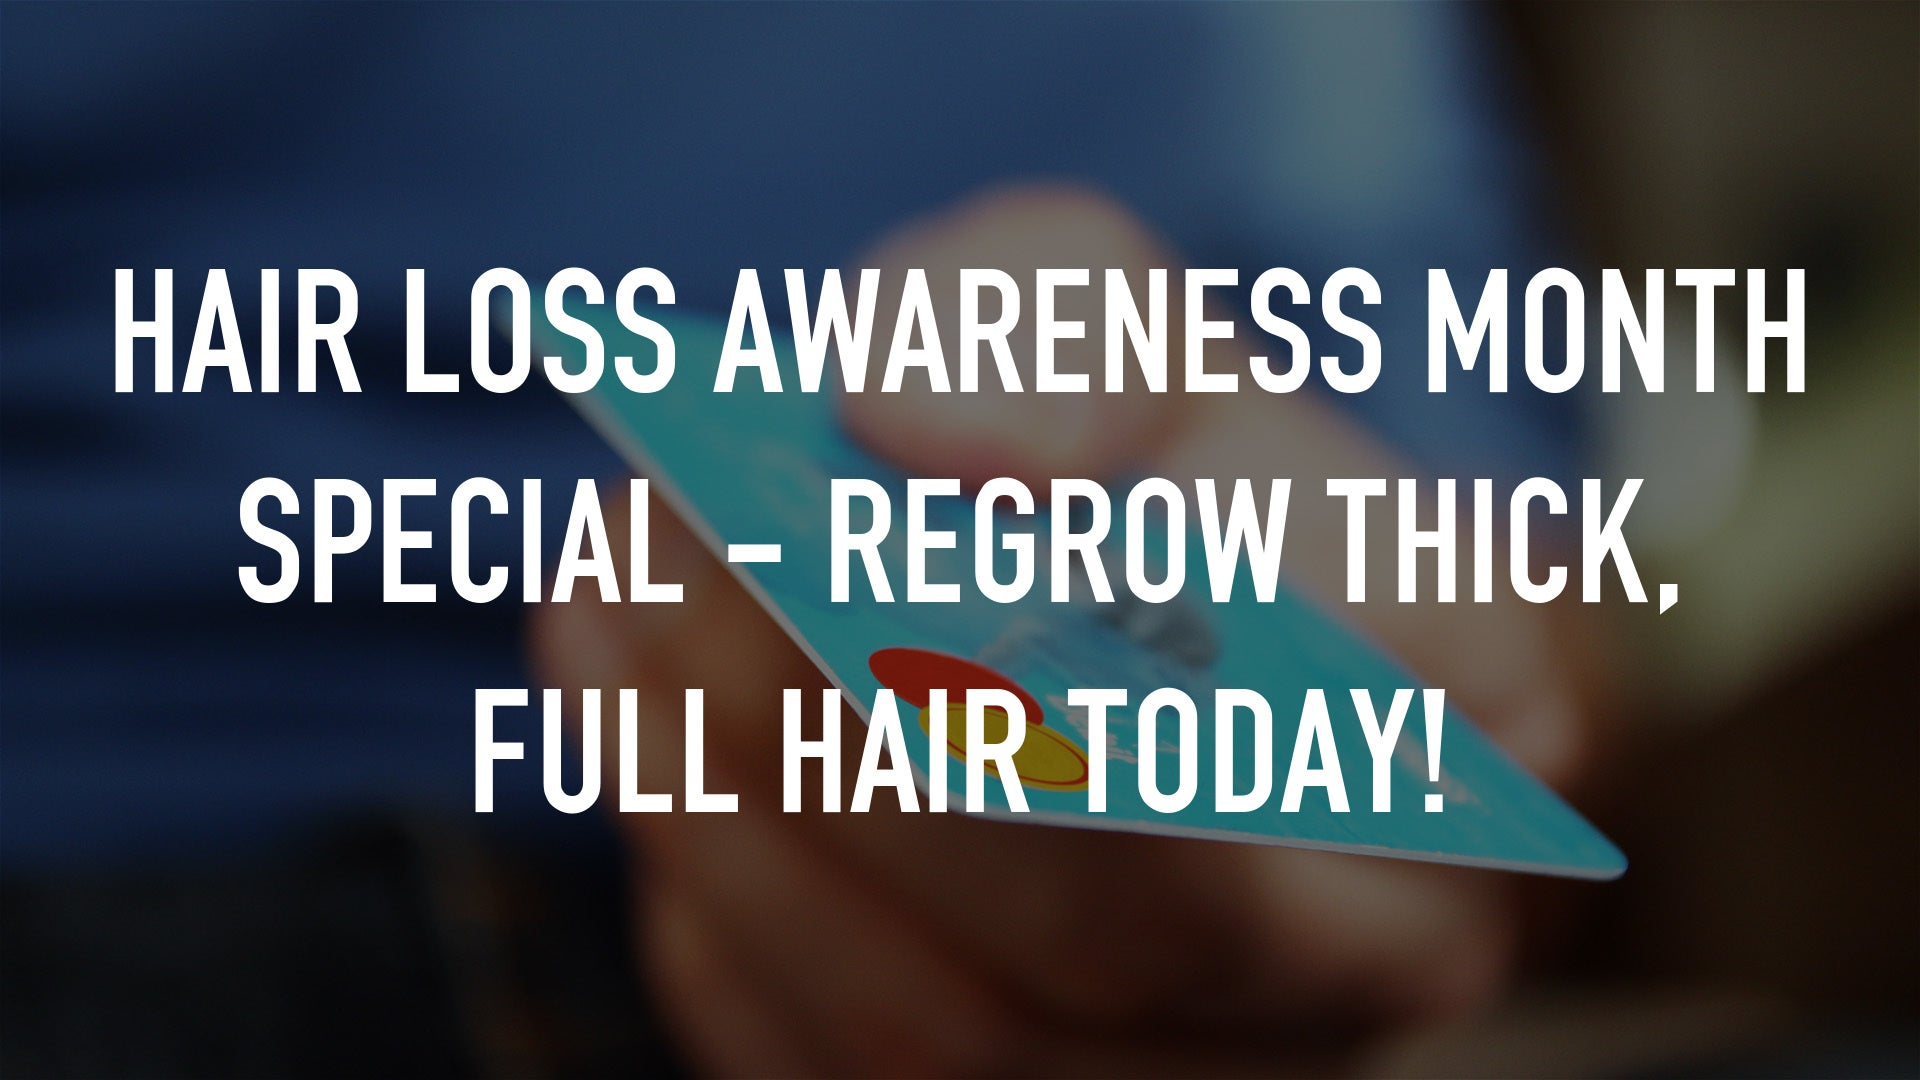 Hair Loss Awareness Month Special - Regrow Thick, Full Hair Today!